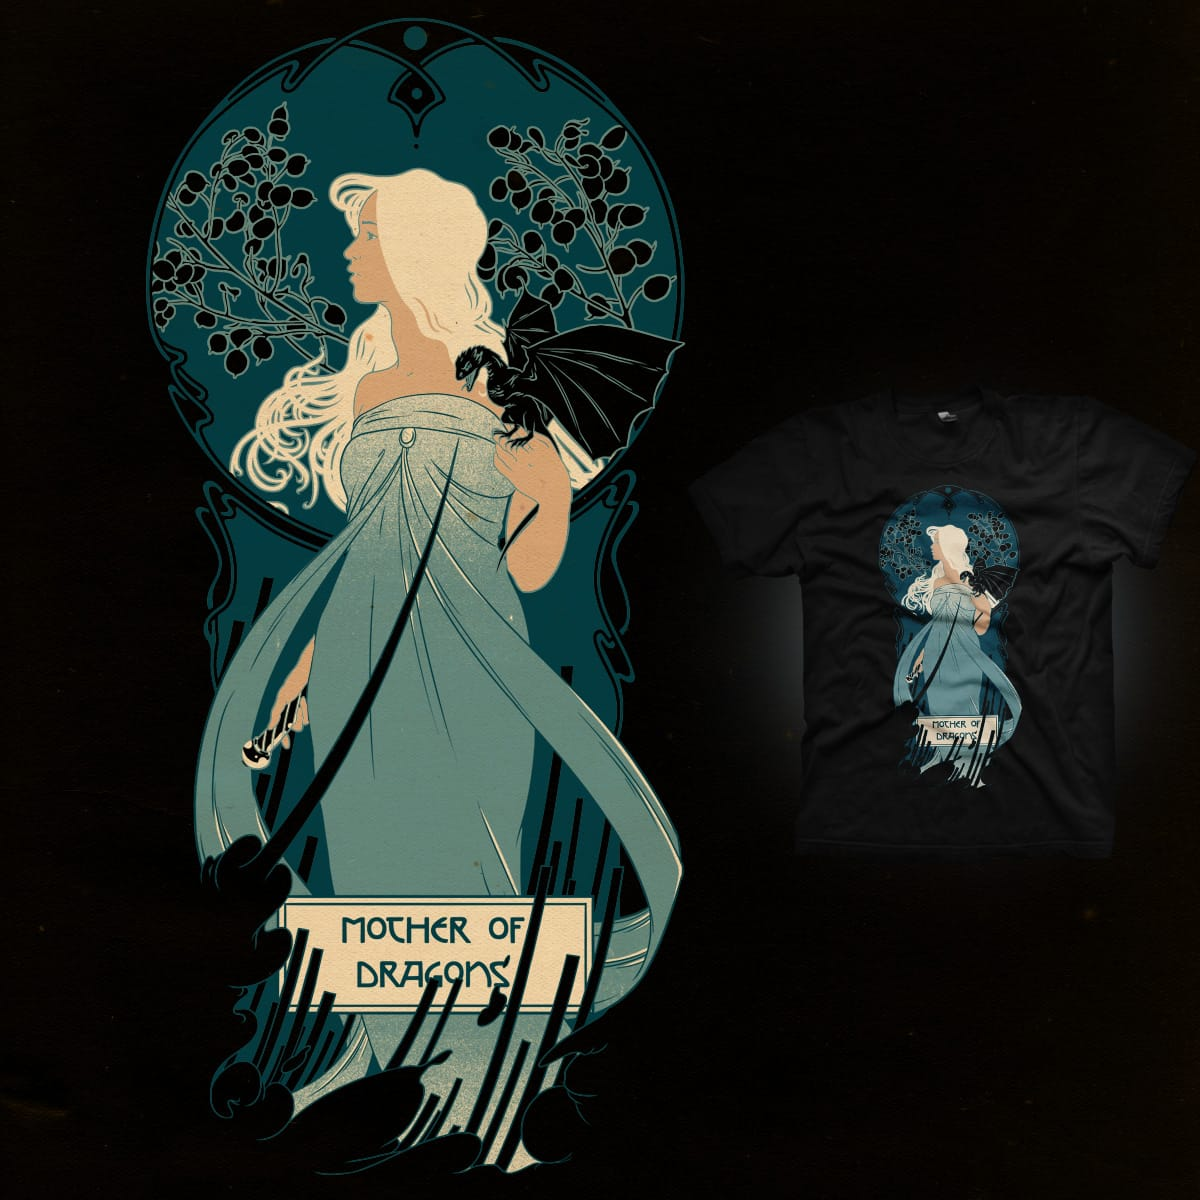 Mother of Dragons by mathiole on Threadless